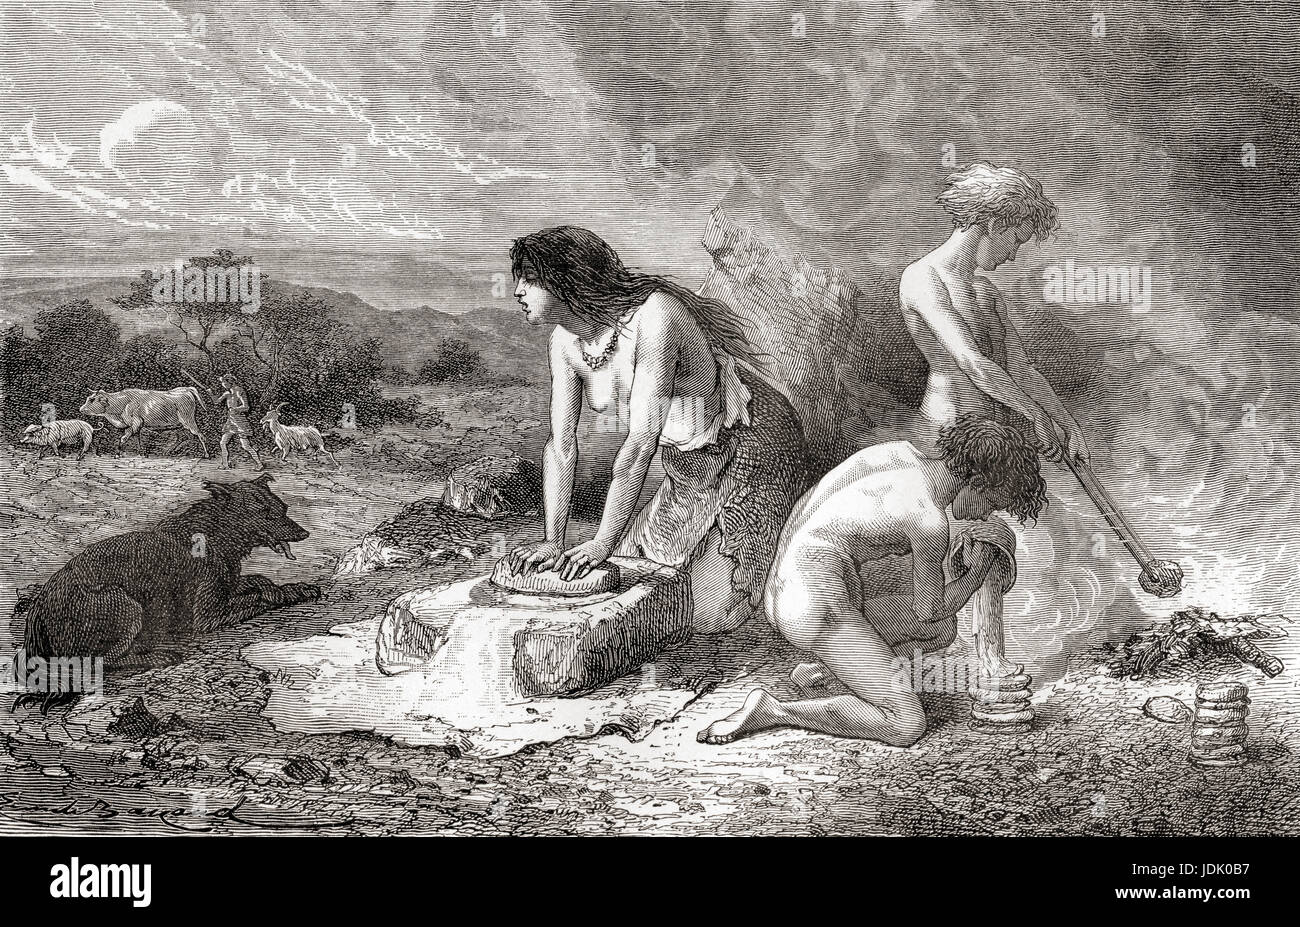 Making bread during the Neolithic Age aka New Stone Age or Age of the Polished Stone. From L'Homme Primitif, - Stock Image